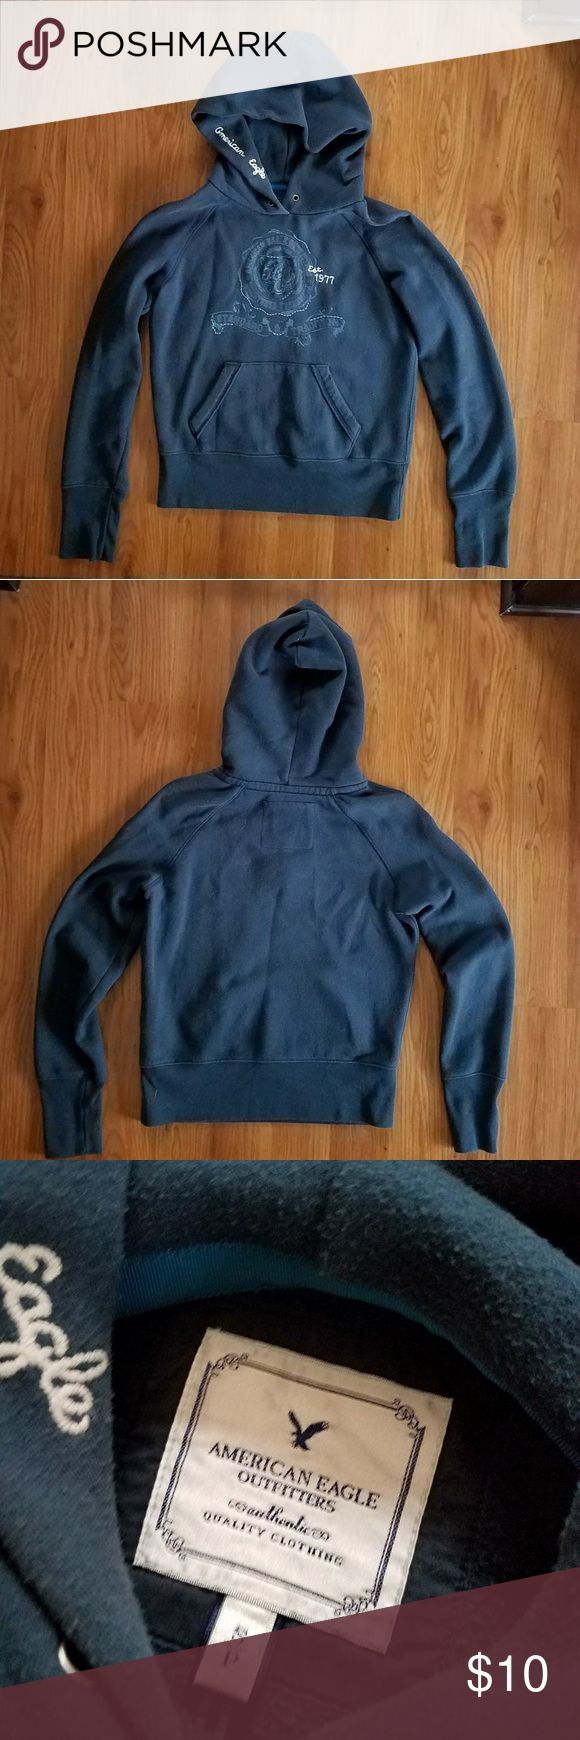 American Eagle navy blue hoodie Navy blue hoodie with contrasting blue design/lettering on front. Embroidered American Eagle in white on inside of hood. Drawstring missing but otherwise in great shape. American Eagle Outfitters Tops Sweatshirts & Hoodies